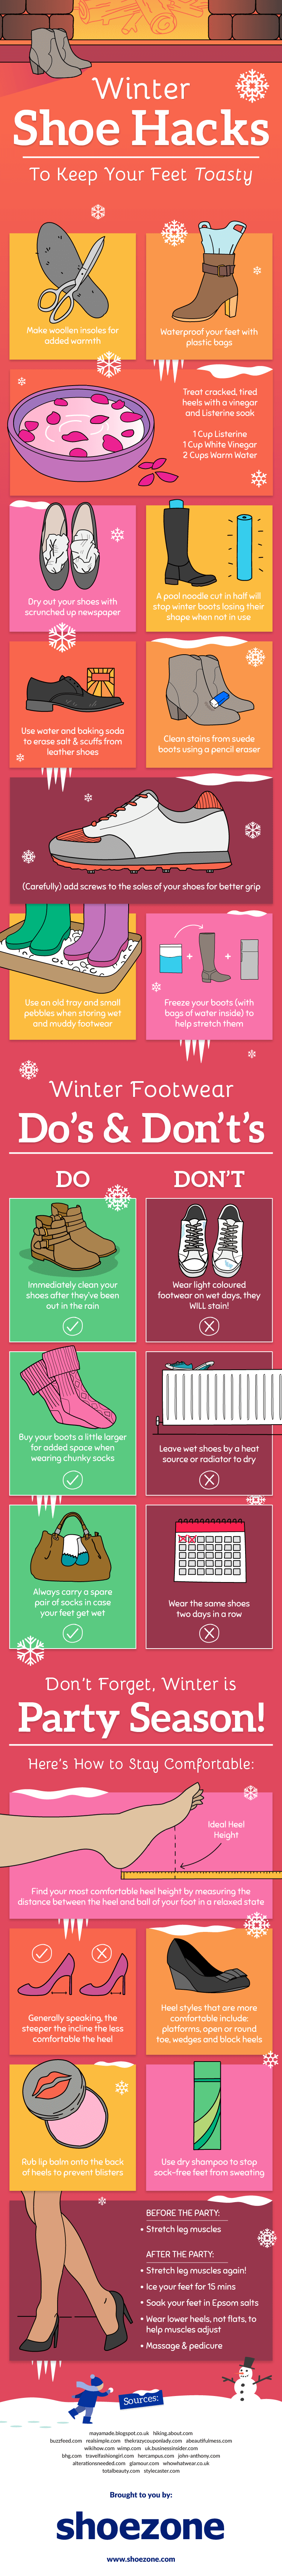 How To Protect Your Shoes From Snow And Rain